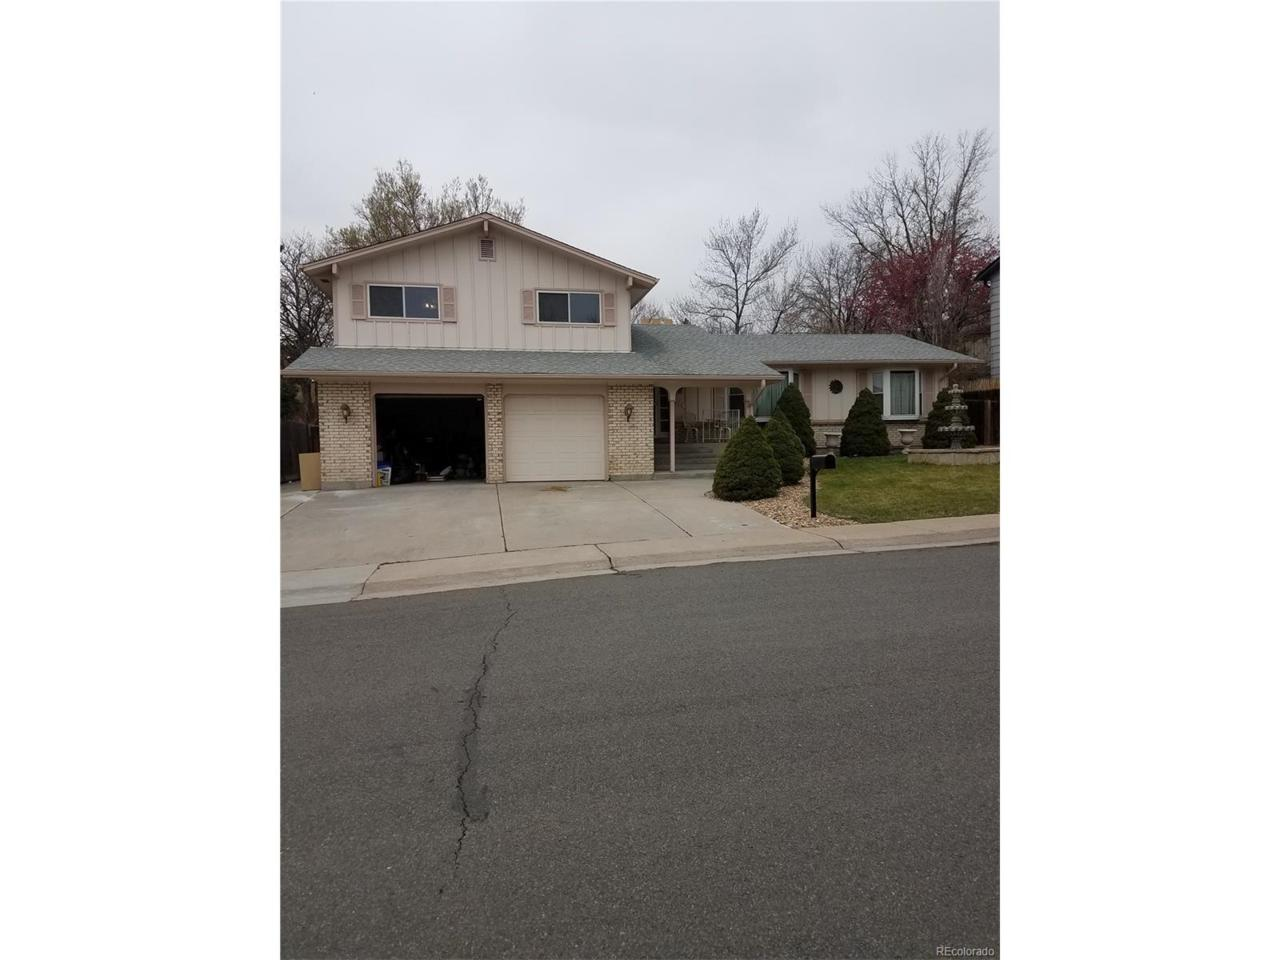 873 S Lee Street, Lakewood, CO 80226 (MLS #9952053) :: 8z Real Estate